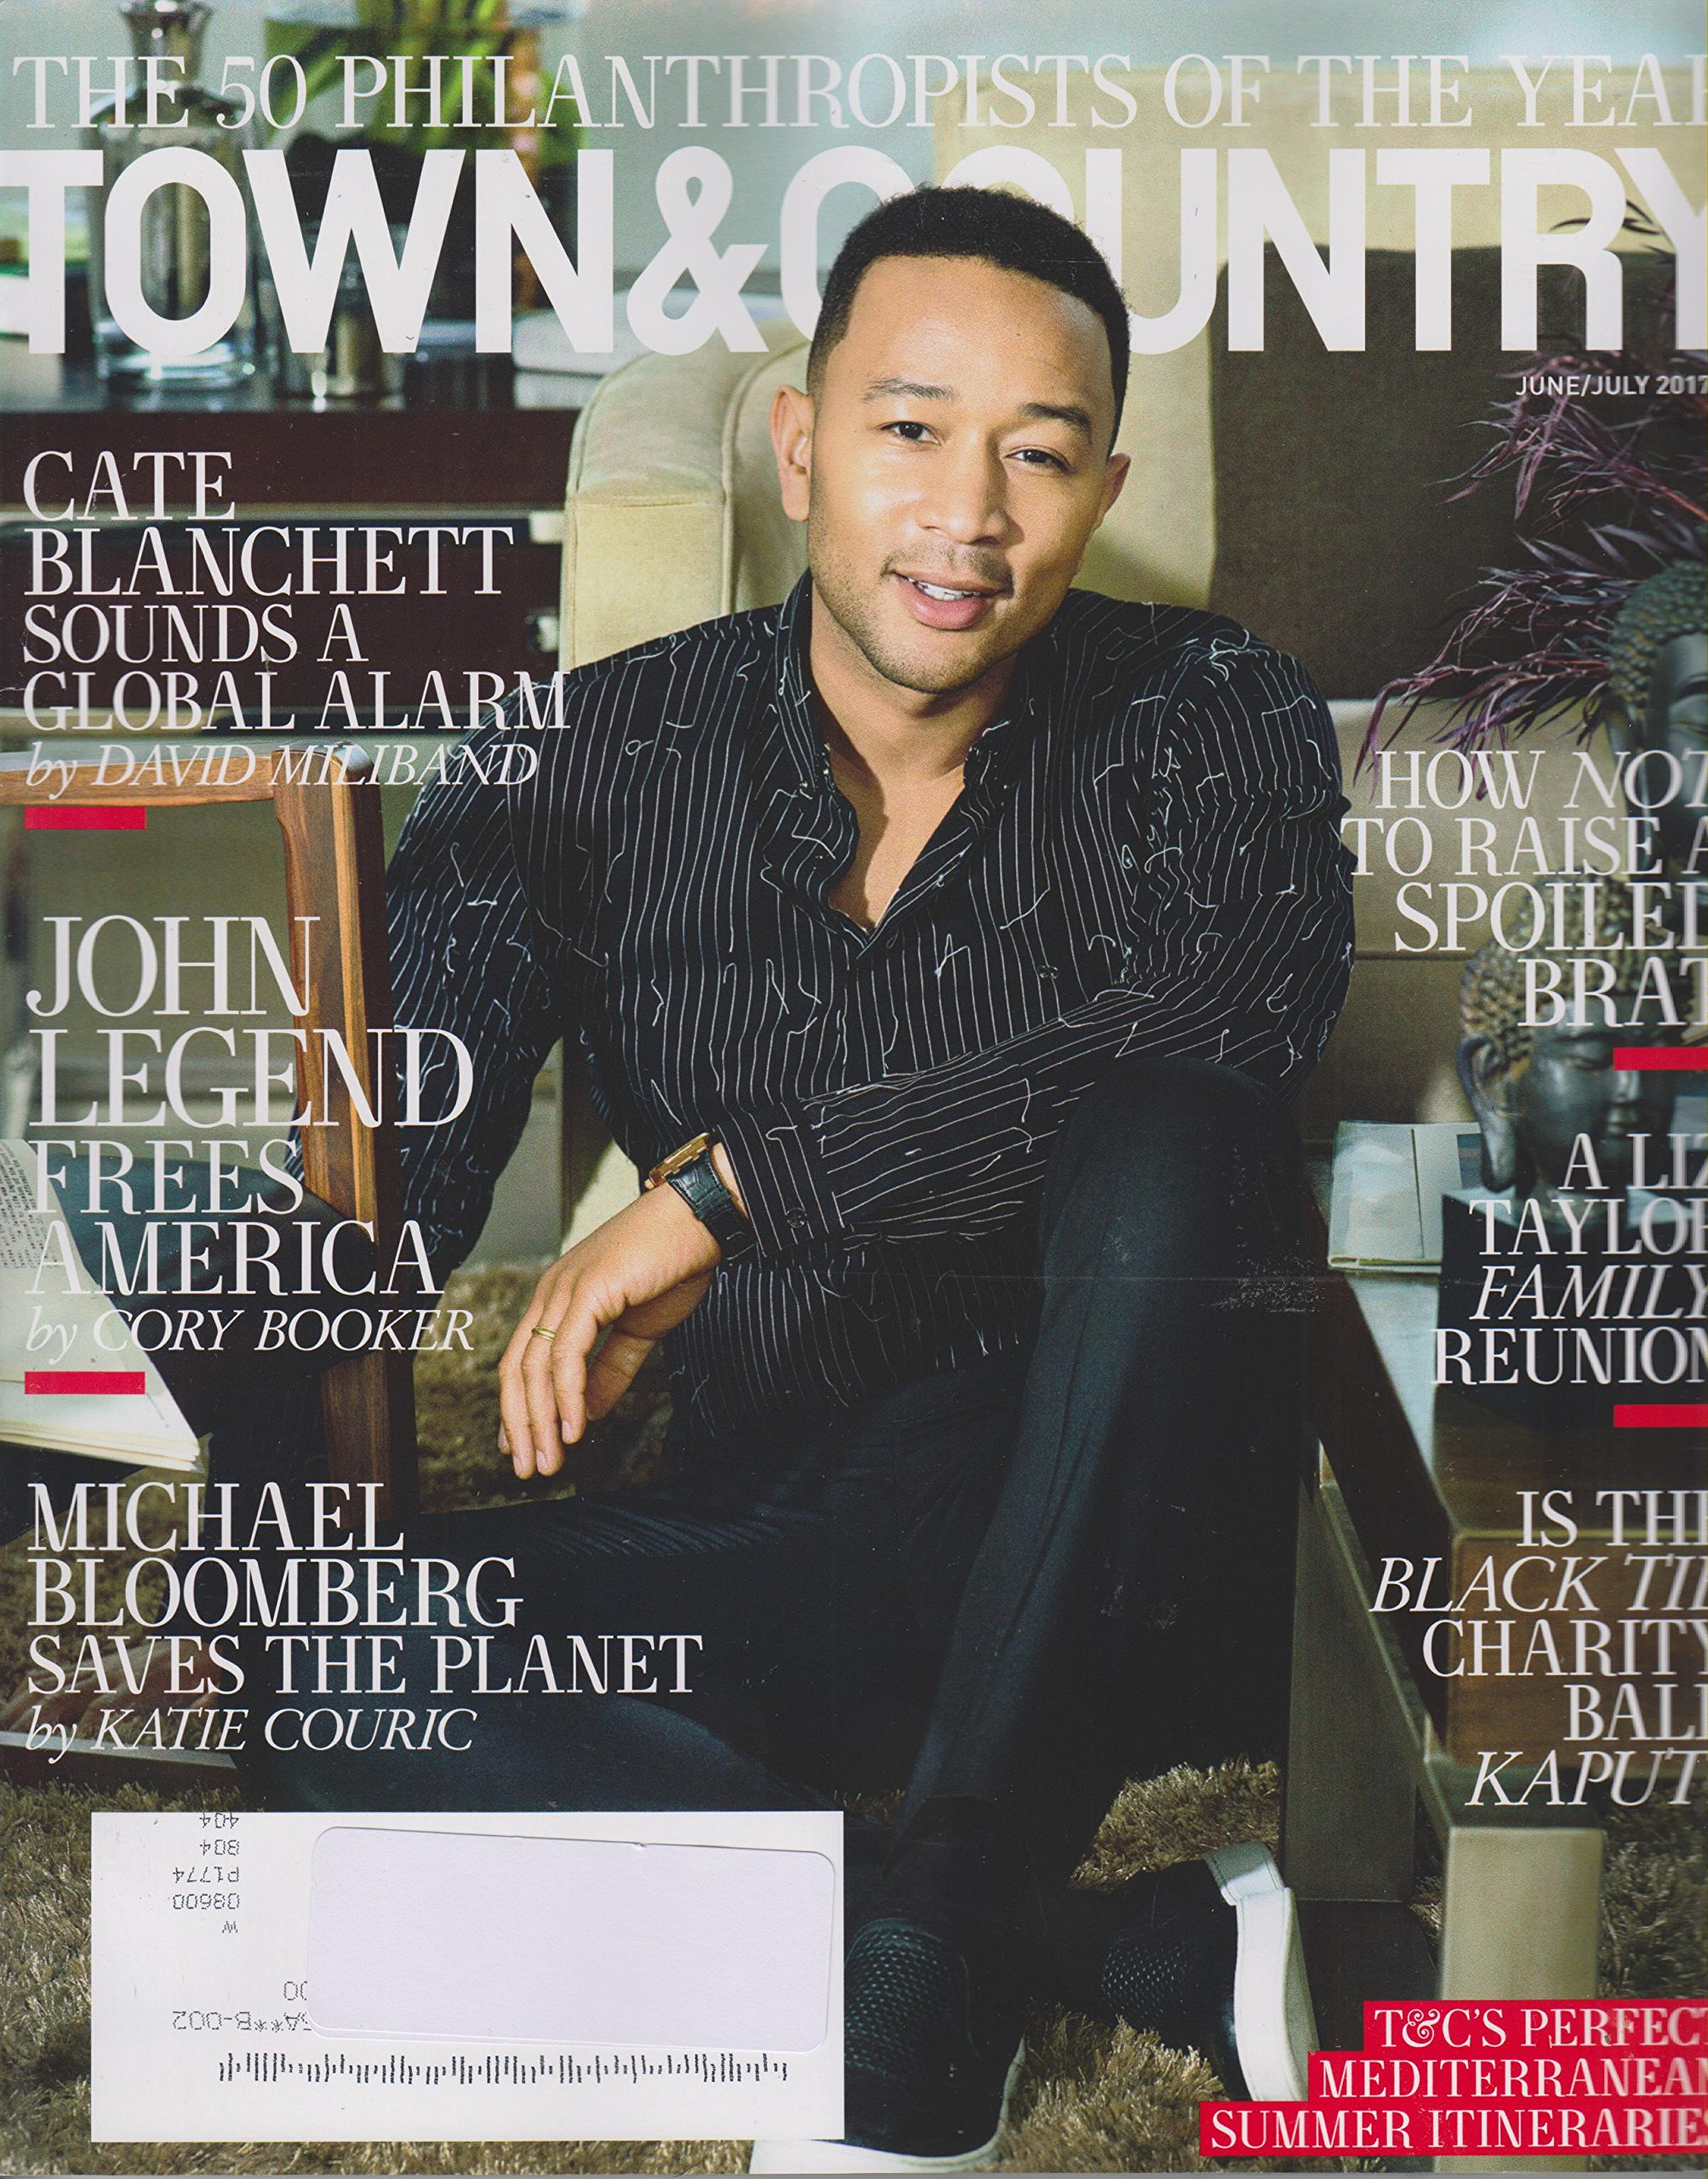 Download Town & Country Magazine (June/July, 2017) John Legend Frees America - The 50 Philanthropists of The Year pdf